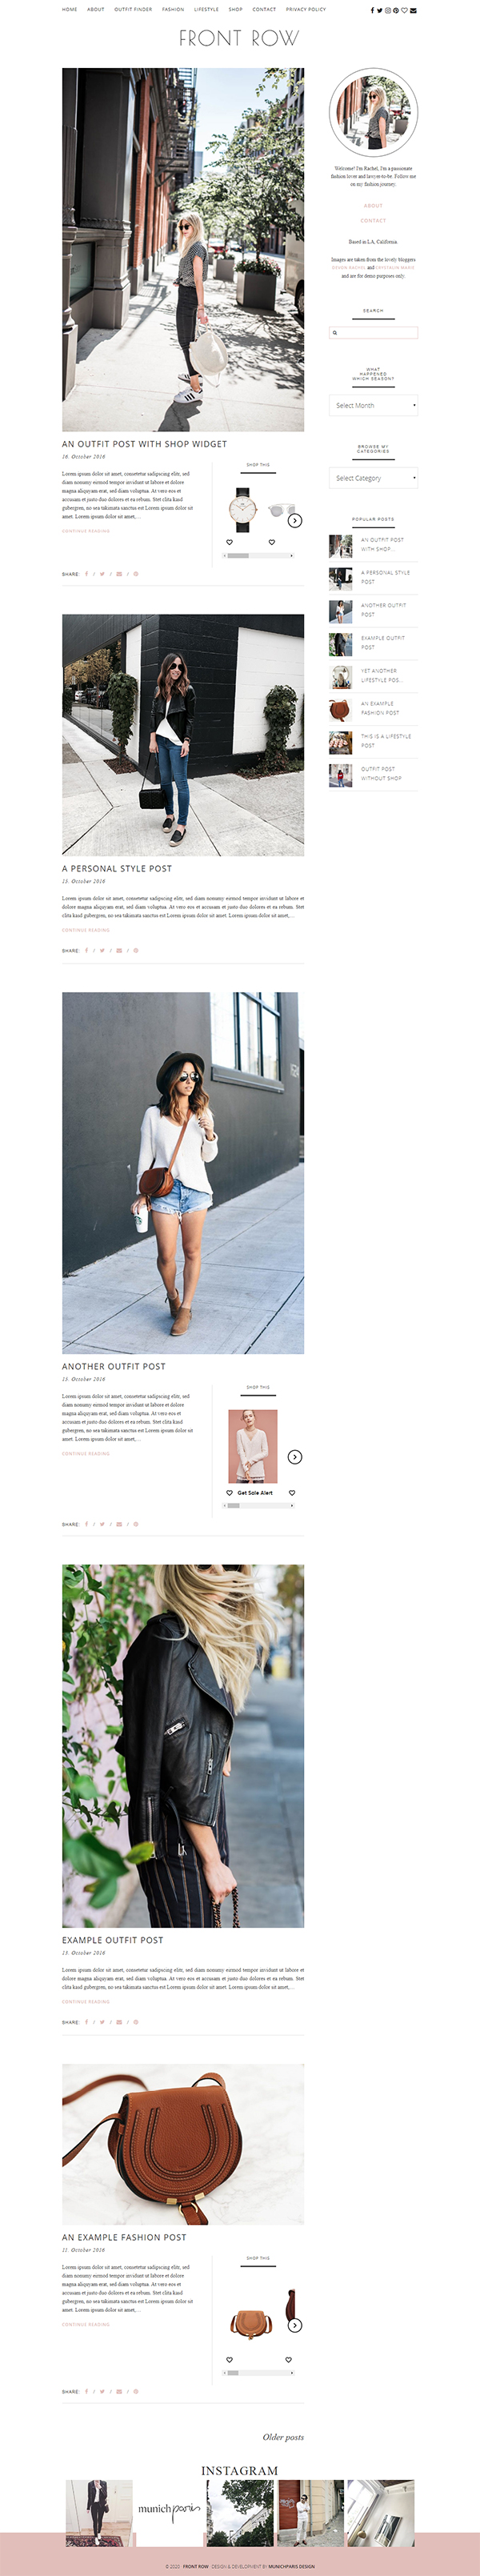 Fashion Blog Shop Theme - Front Row